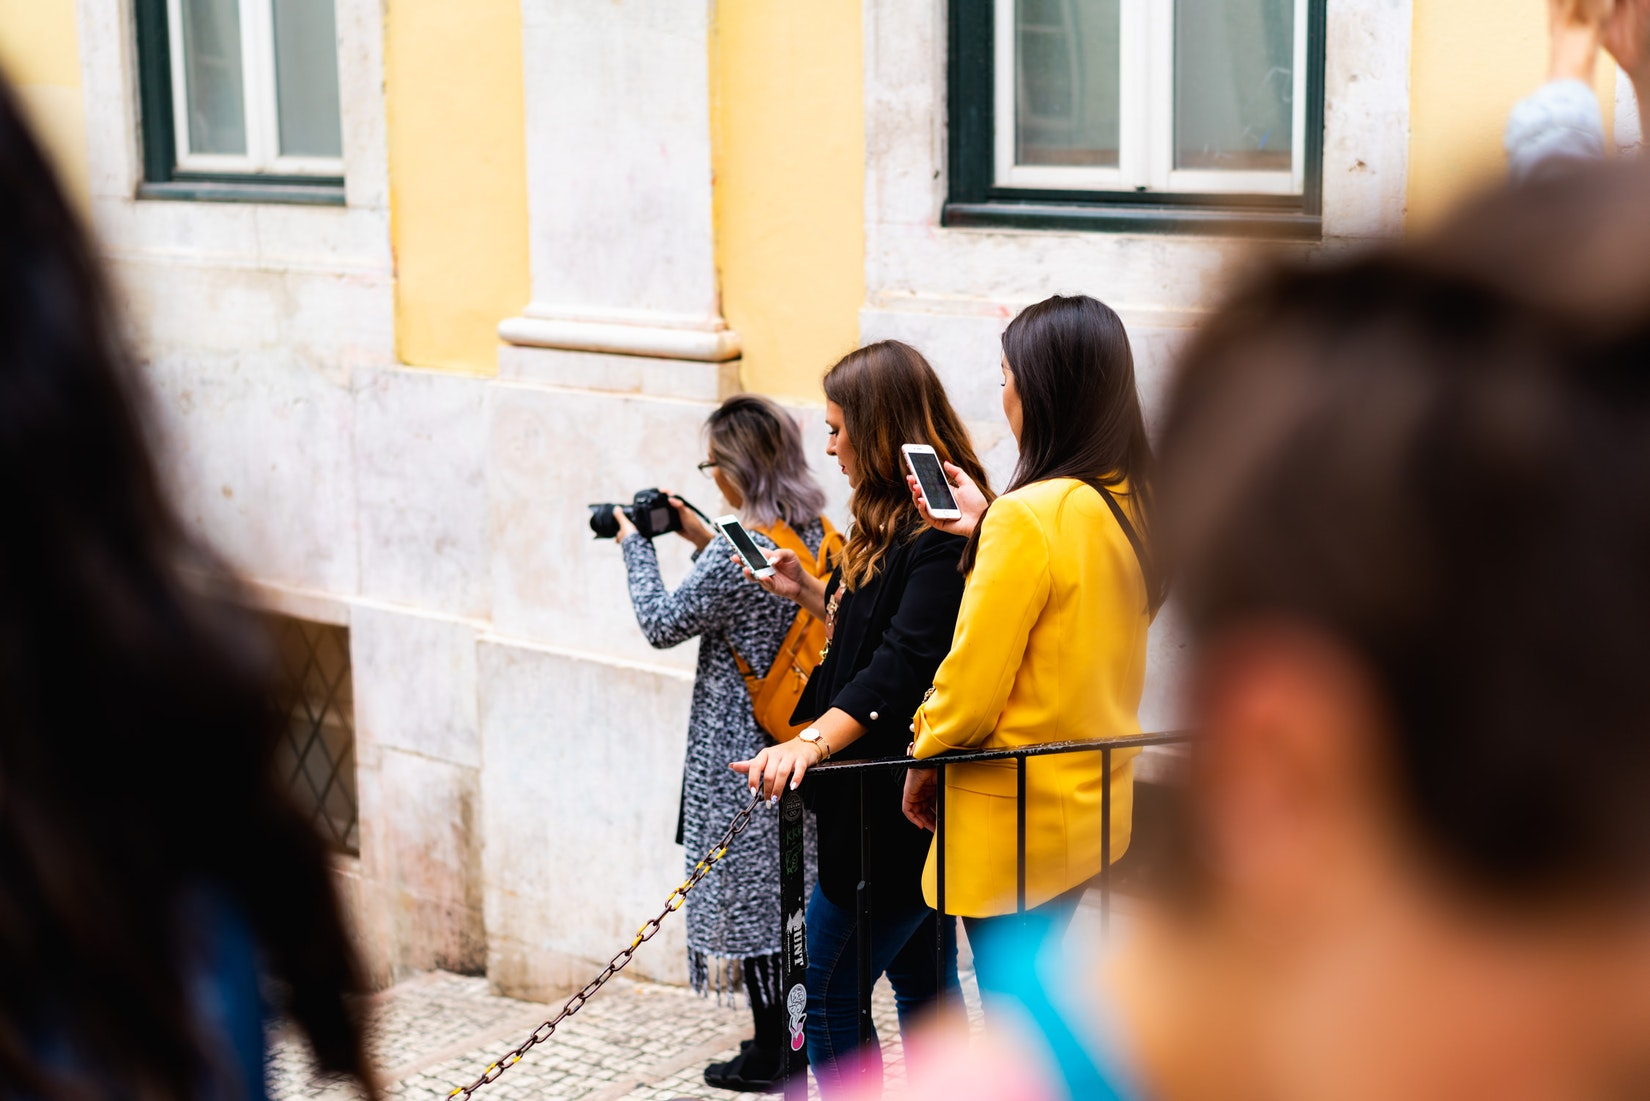 Girls each taking a photo on Rua de Bica in Bairro Alto, Lisbon, Portugal